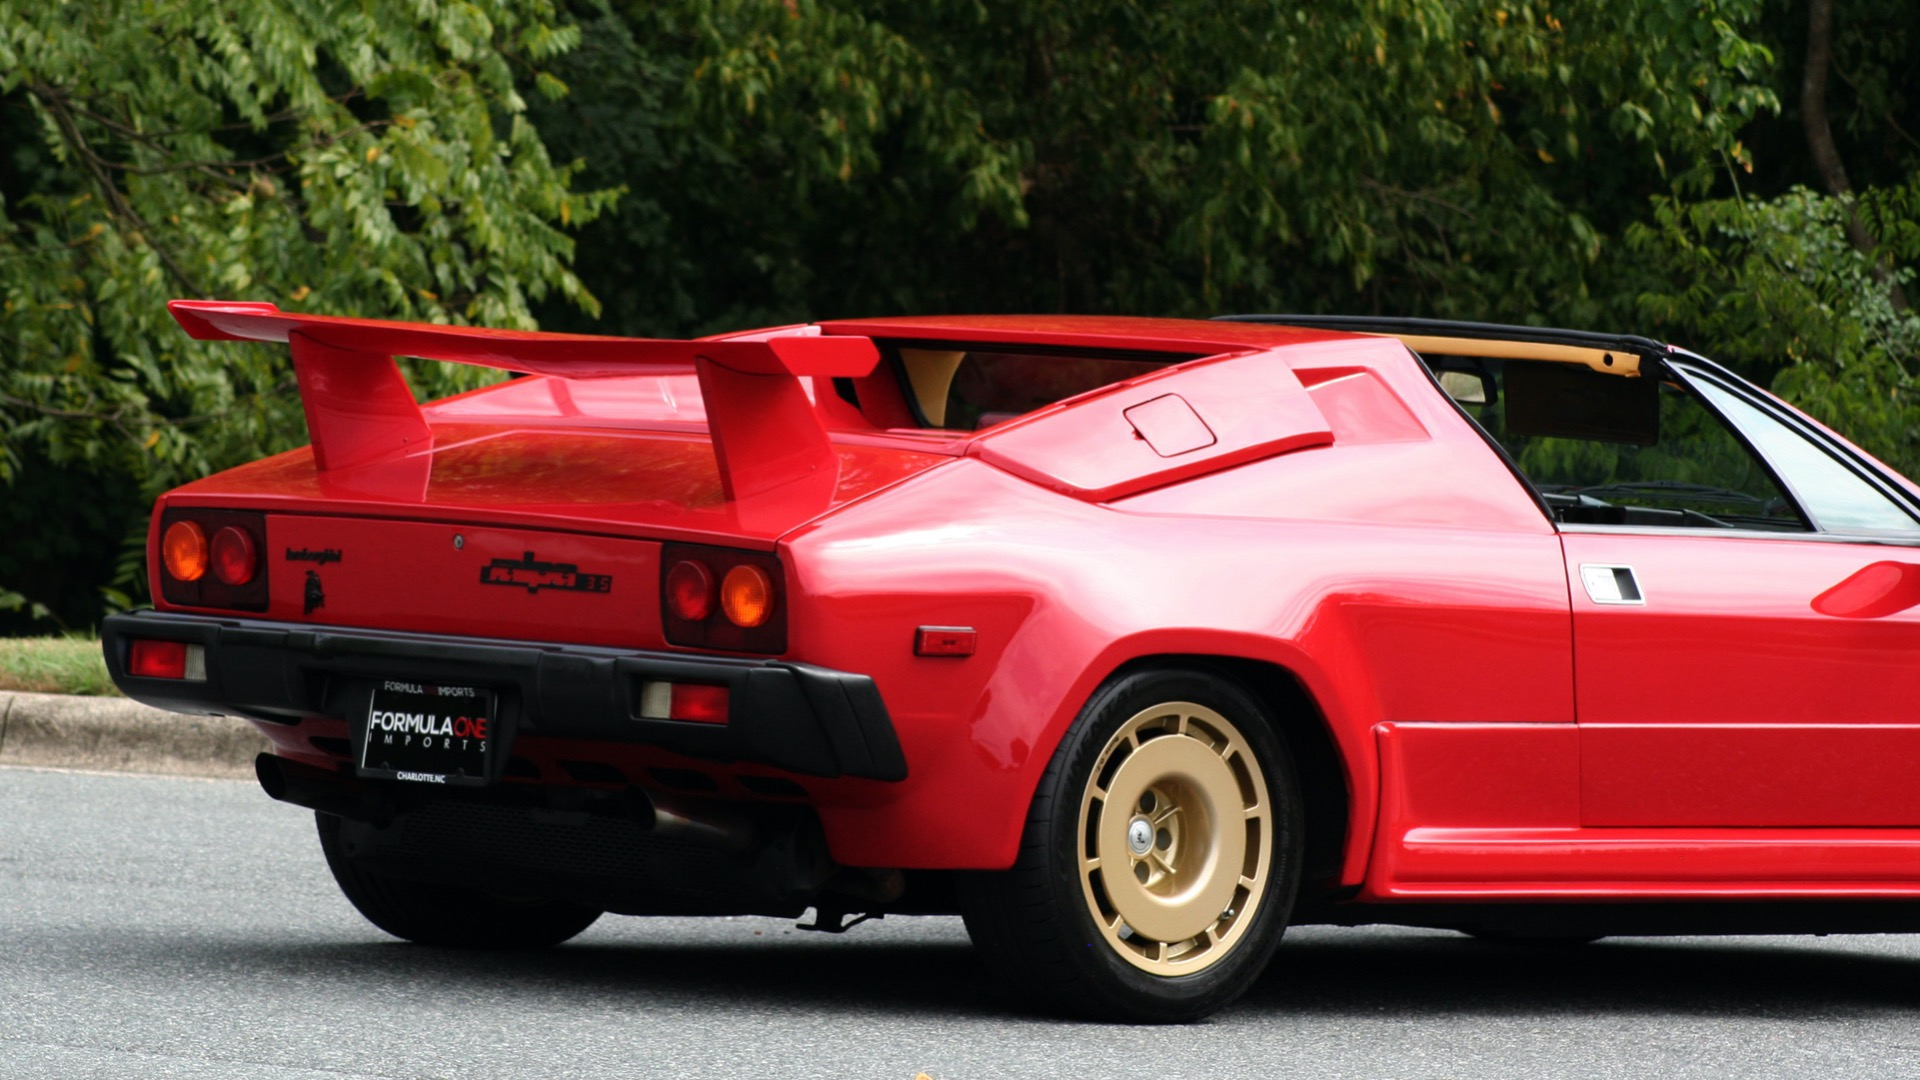 Used 1988 Lamborghini JALPA 3.5 / 5-SPD MANUAL / LOW MILES / EXCELLENT CONDITION for sale Sold at Formula Imports in Charlotte NC 28227 10